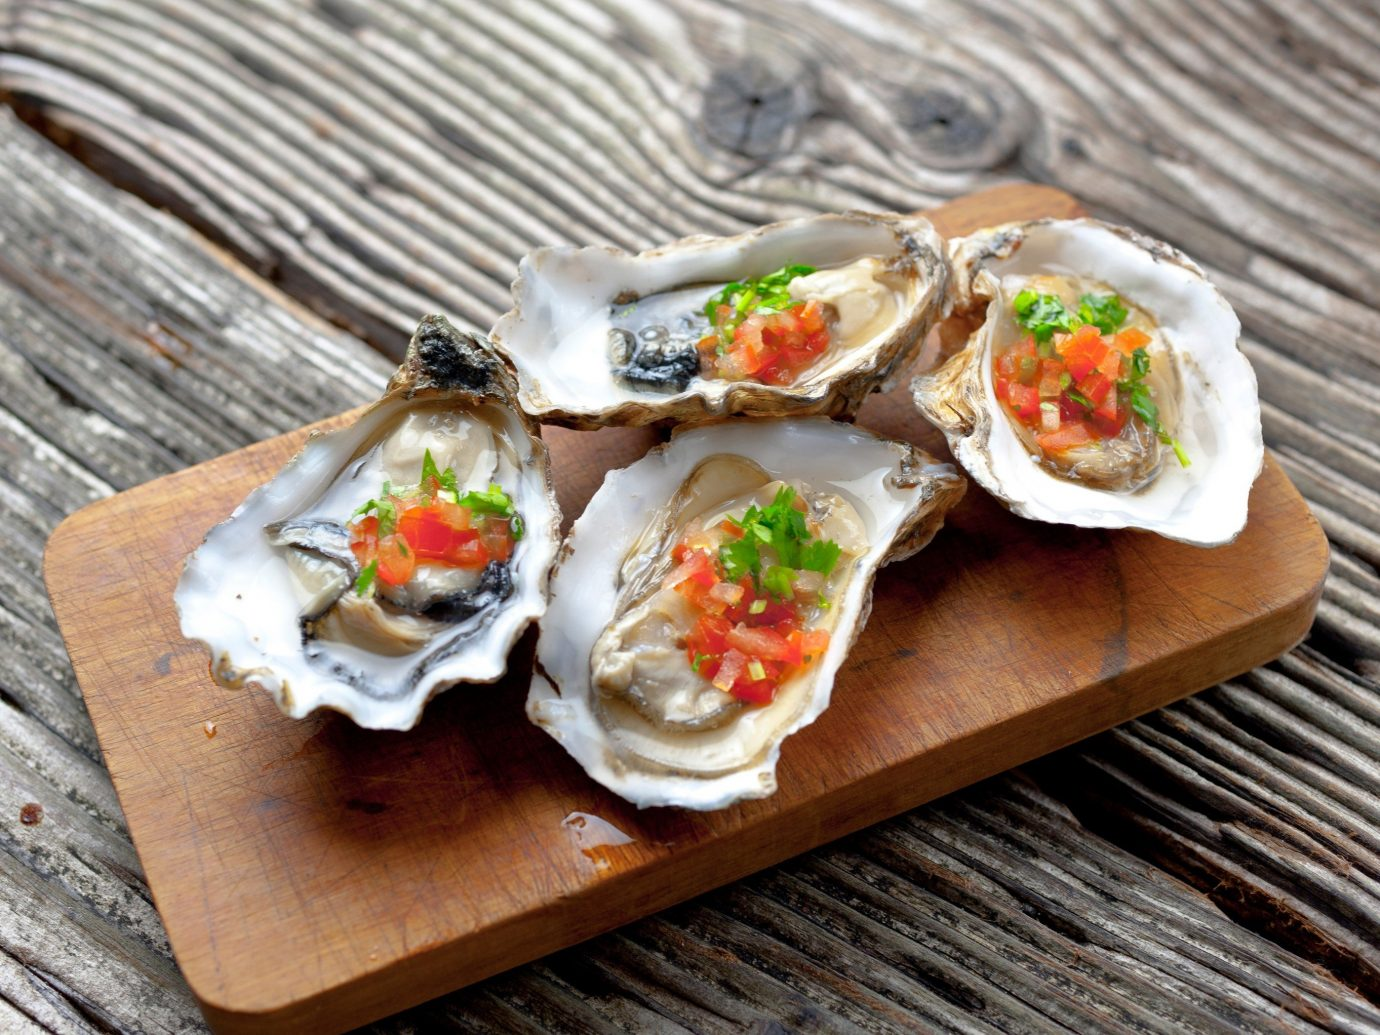 Trip Ideas wooden table food dish sushi Seafood oyster wood fish cuisine invertebrate mussel clams oysters mussels and scallops animal source foods hors d oeuvre